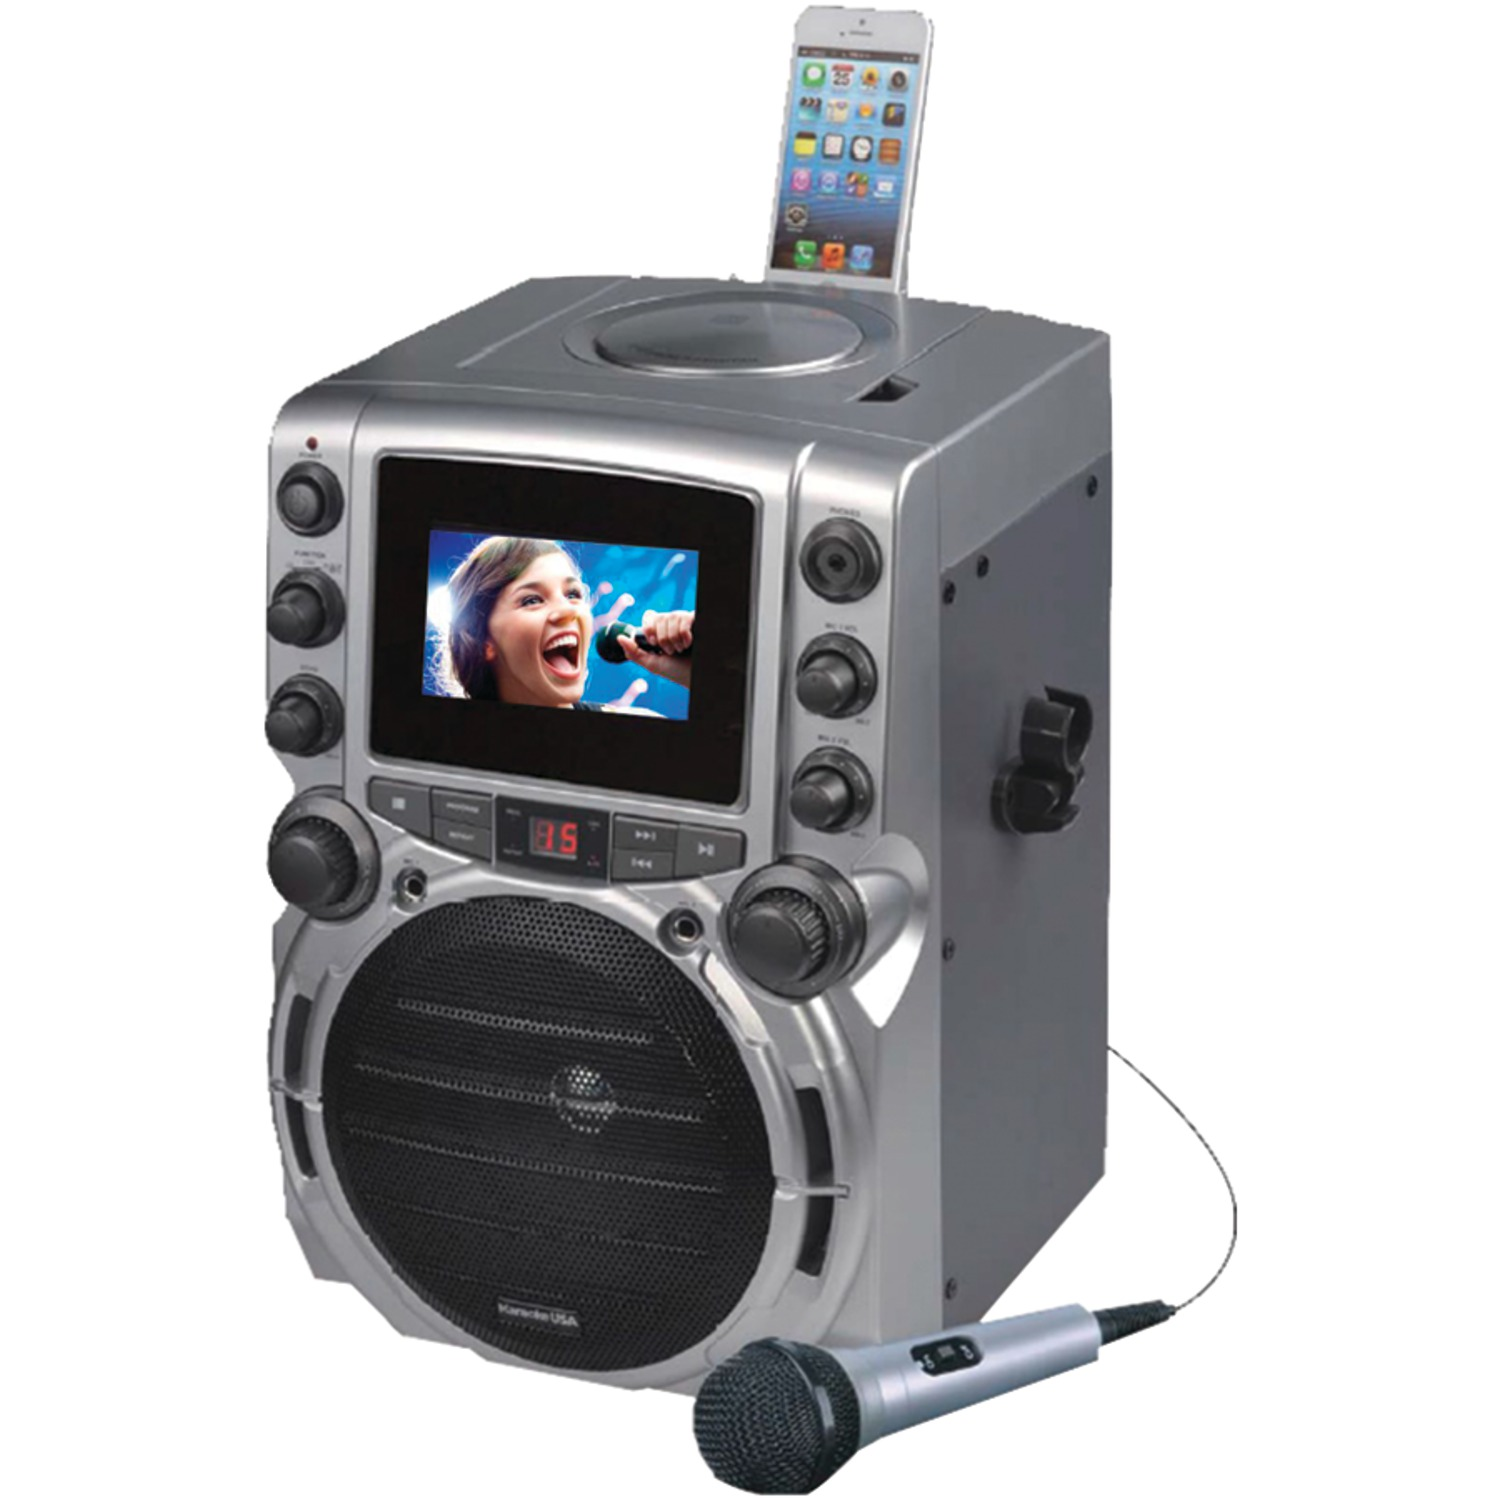 "Karaoke USA GQ743 CDG Bluetooth Karaoke Machine with 4.3"" Color TFT Screen includes 1 microphone"